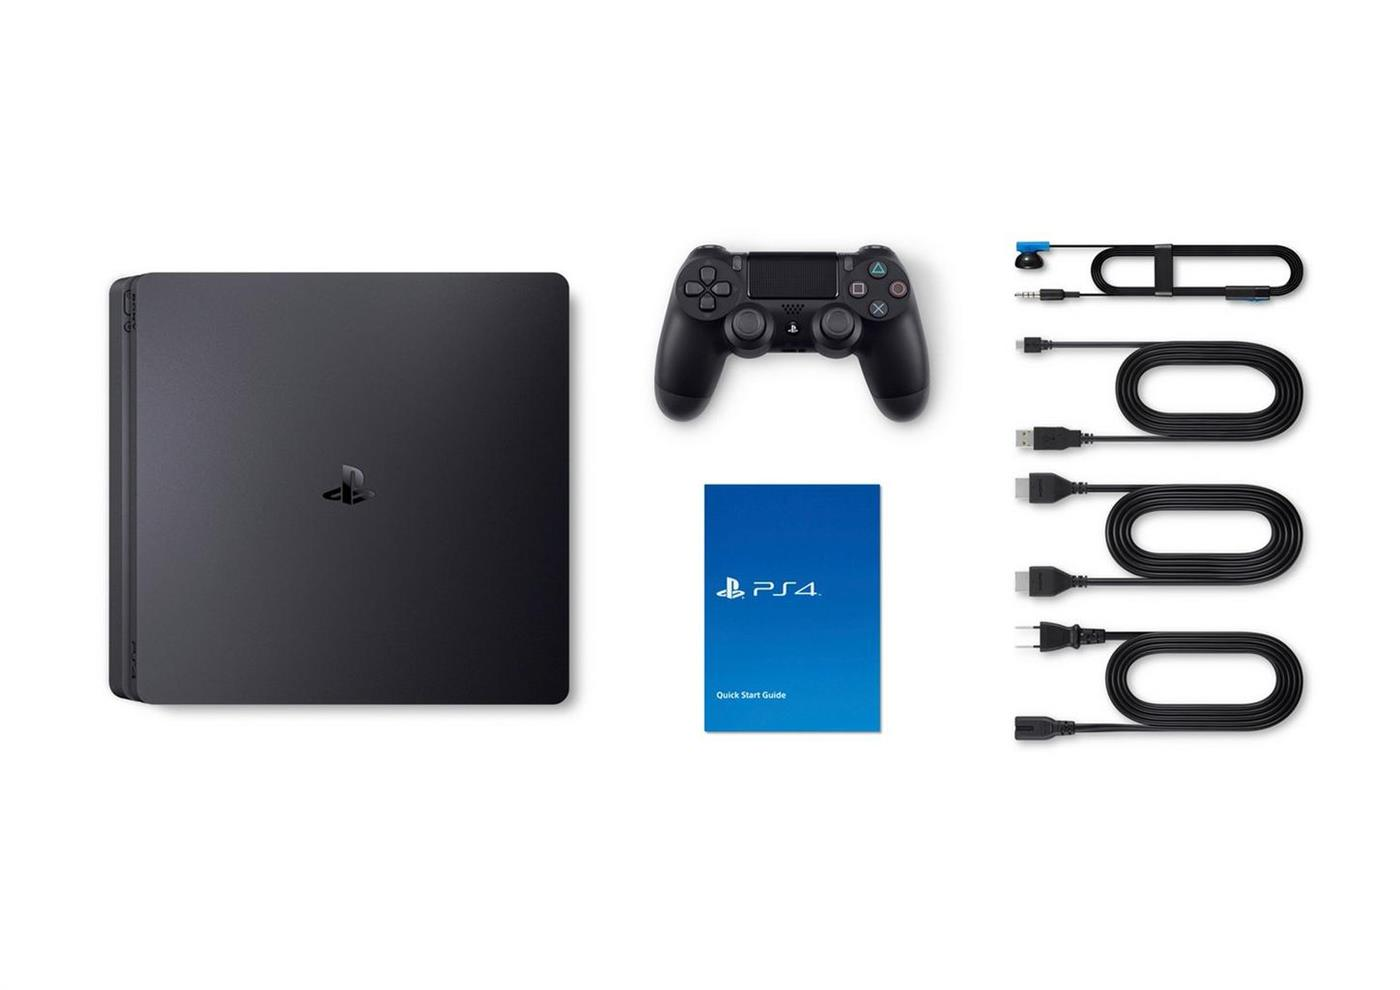 Sony Playstation 4 Console (Slim) 500 GB Zwart Foto 7